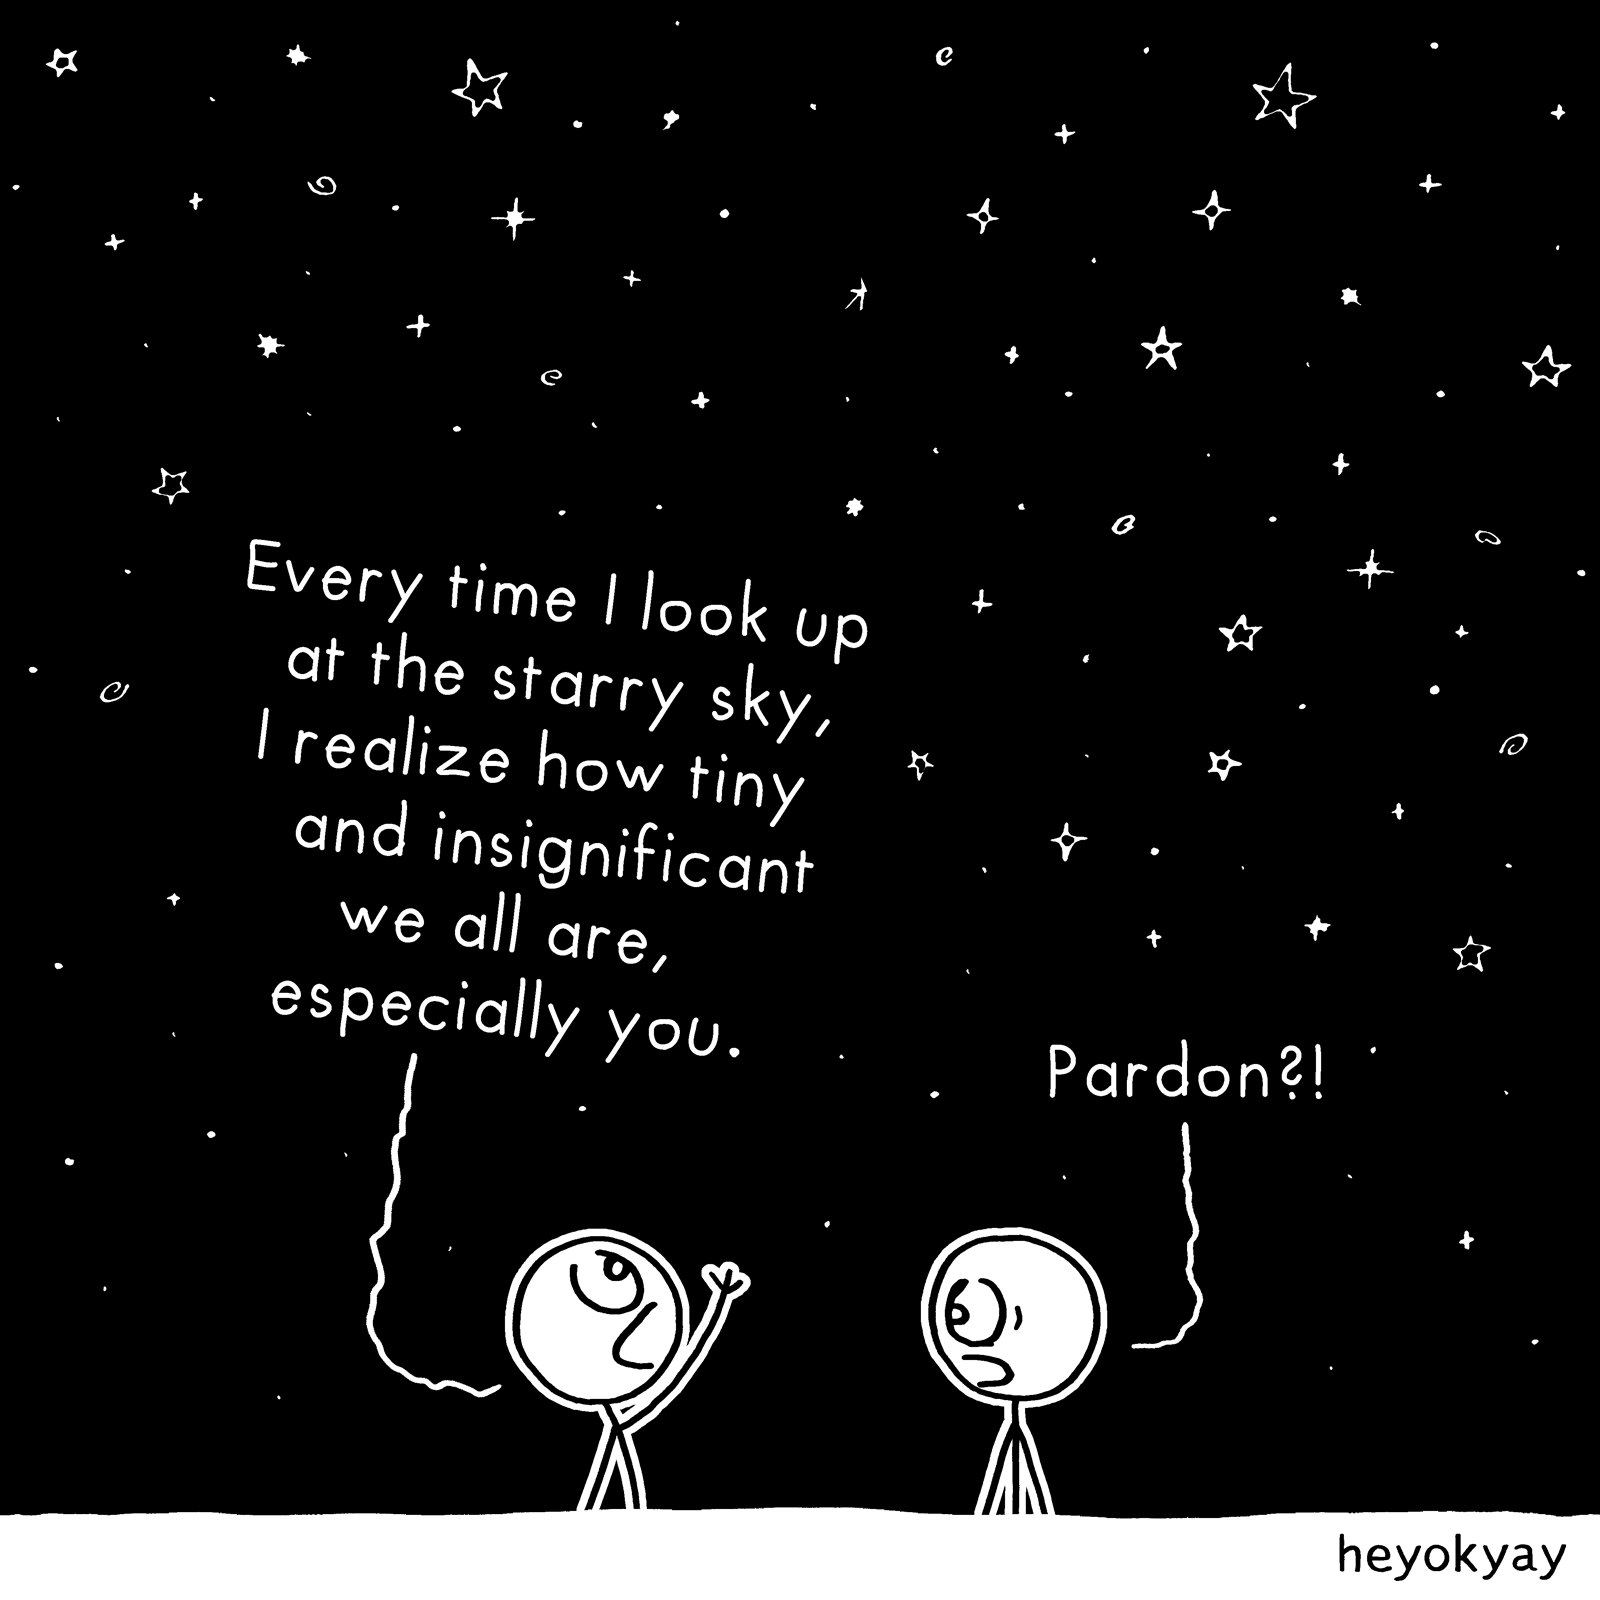 Every time I look up at the starry sky, I realize how tiny and insignificant we all are, especially you. Pardon?! Insignificant heyokyay comic